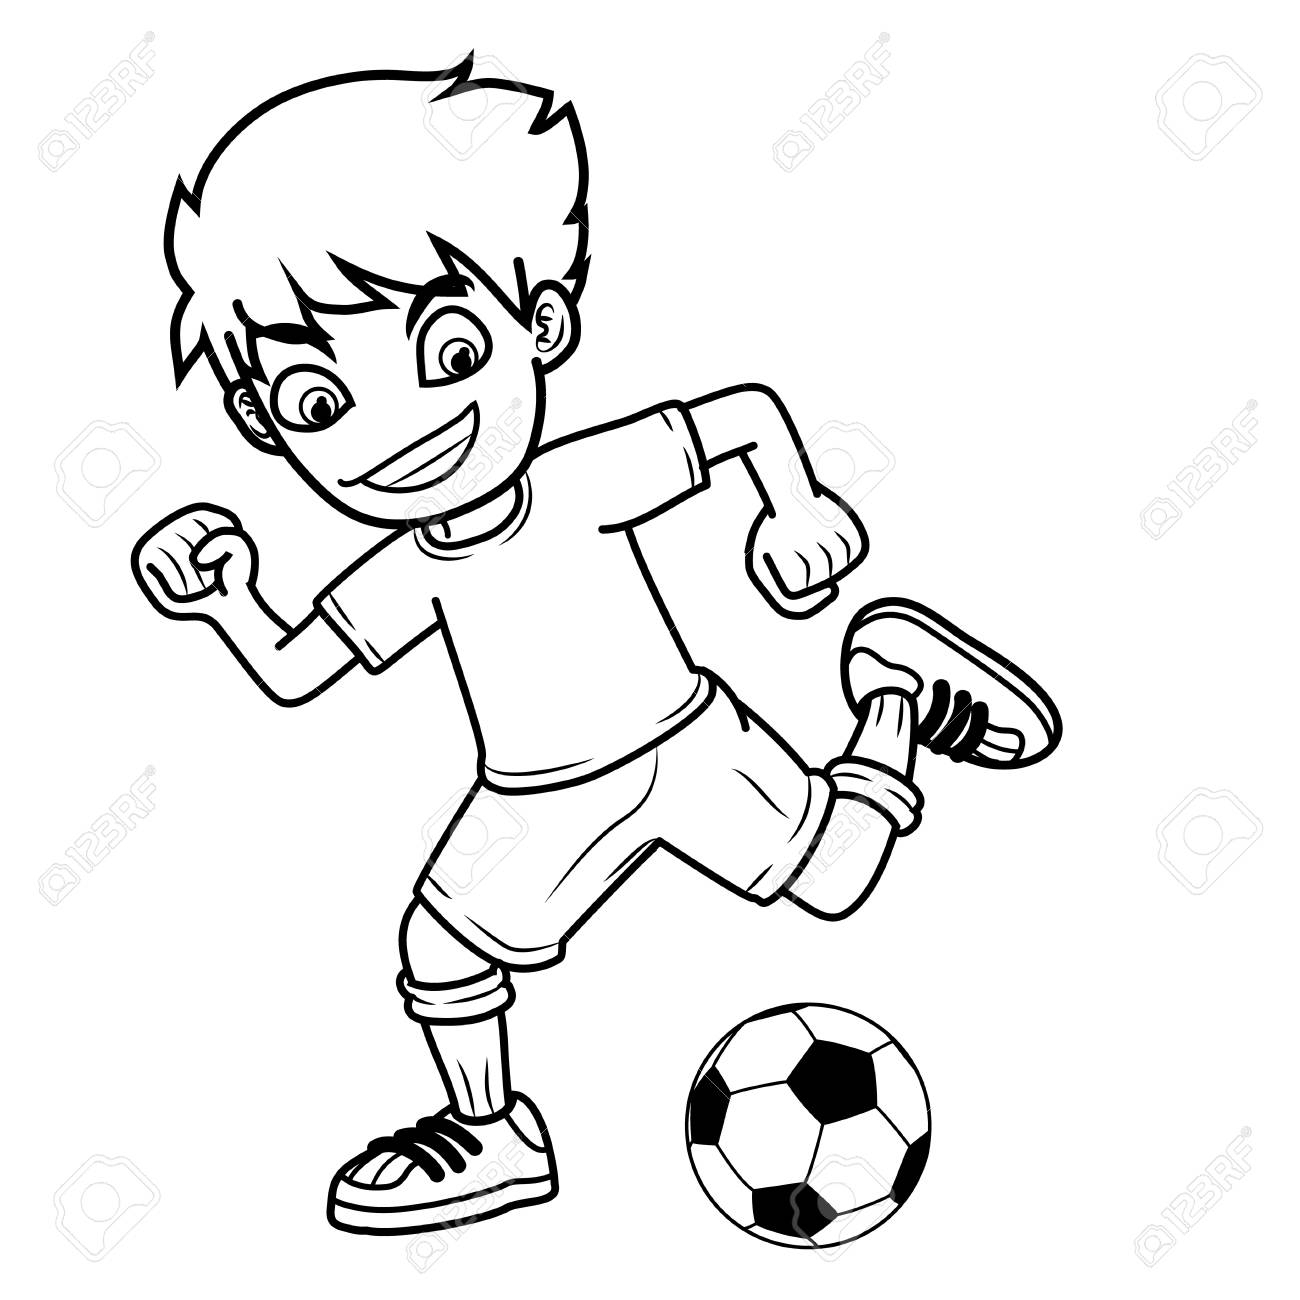 58 Football Black And White free clipart.